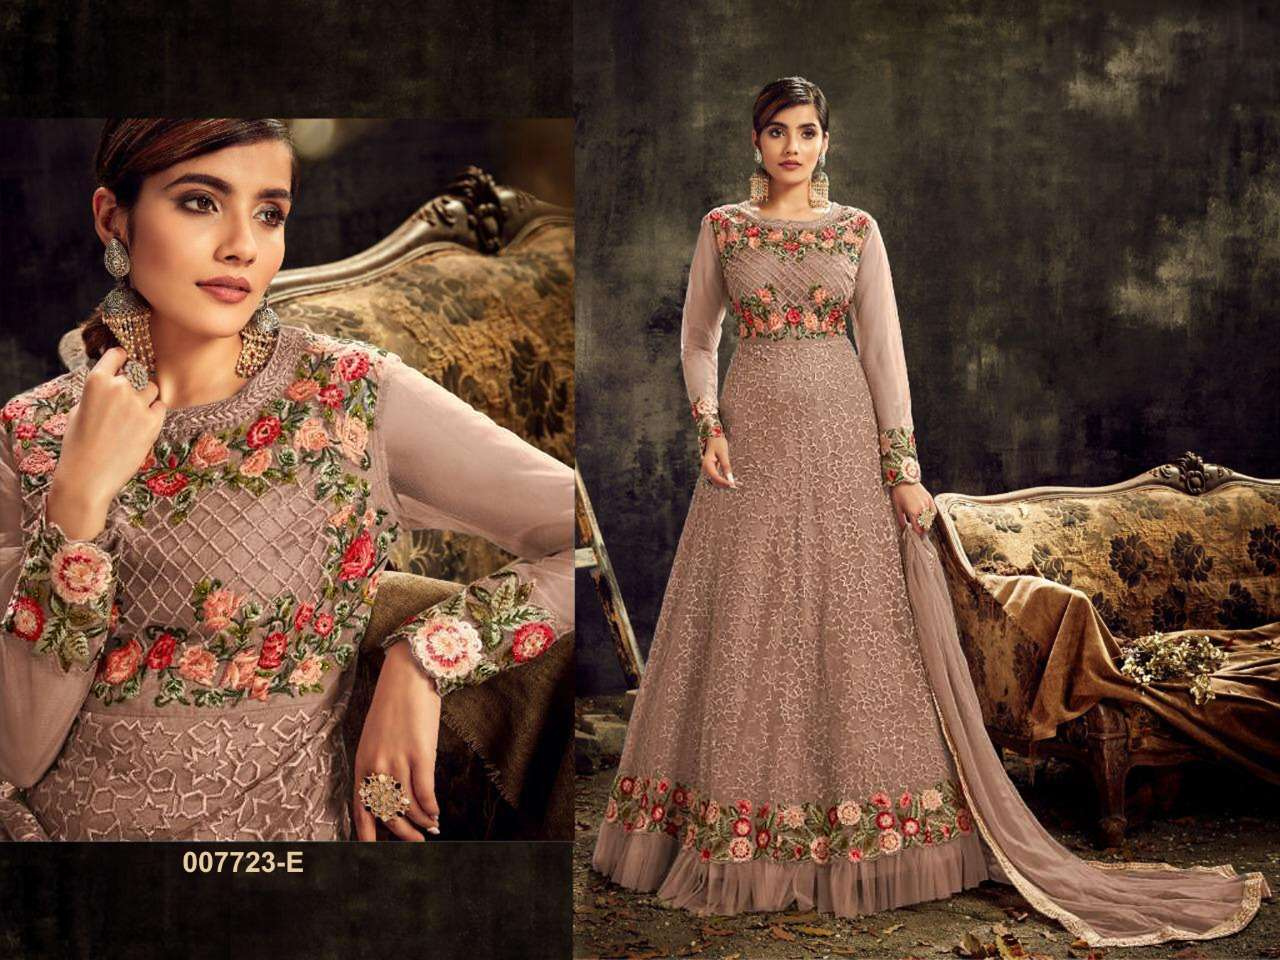 HOTLADYY 7723 DESIGNER HEAVY NET EMBROIDERY WORK PARTYWEAR UNSTITCHED GOWN WITH DUPATTA IN SINGLES